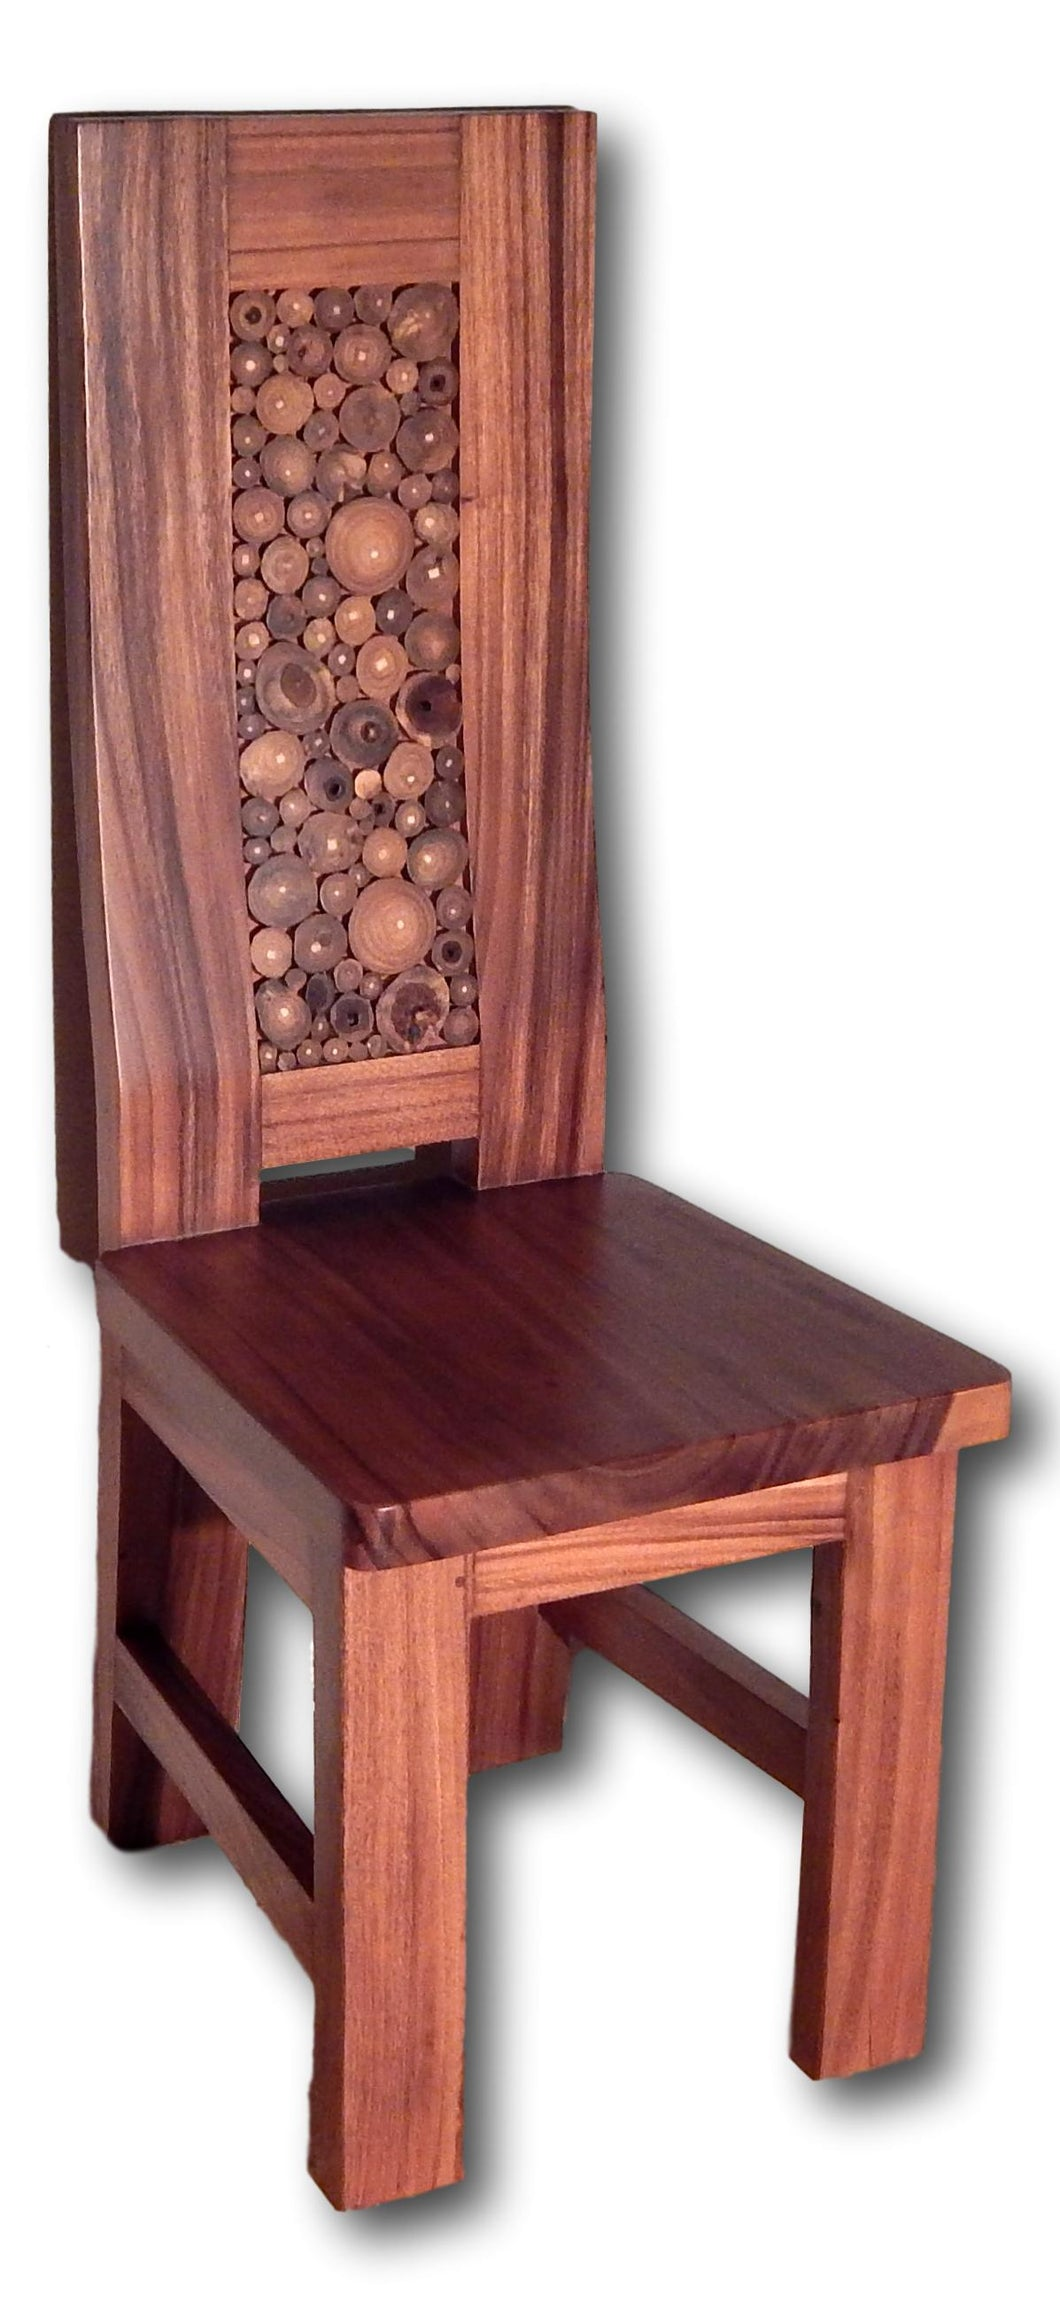 Handcrafted Dining & Kitchen Chair: Roots Cabinets & Tile